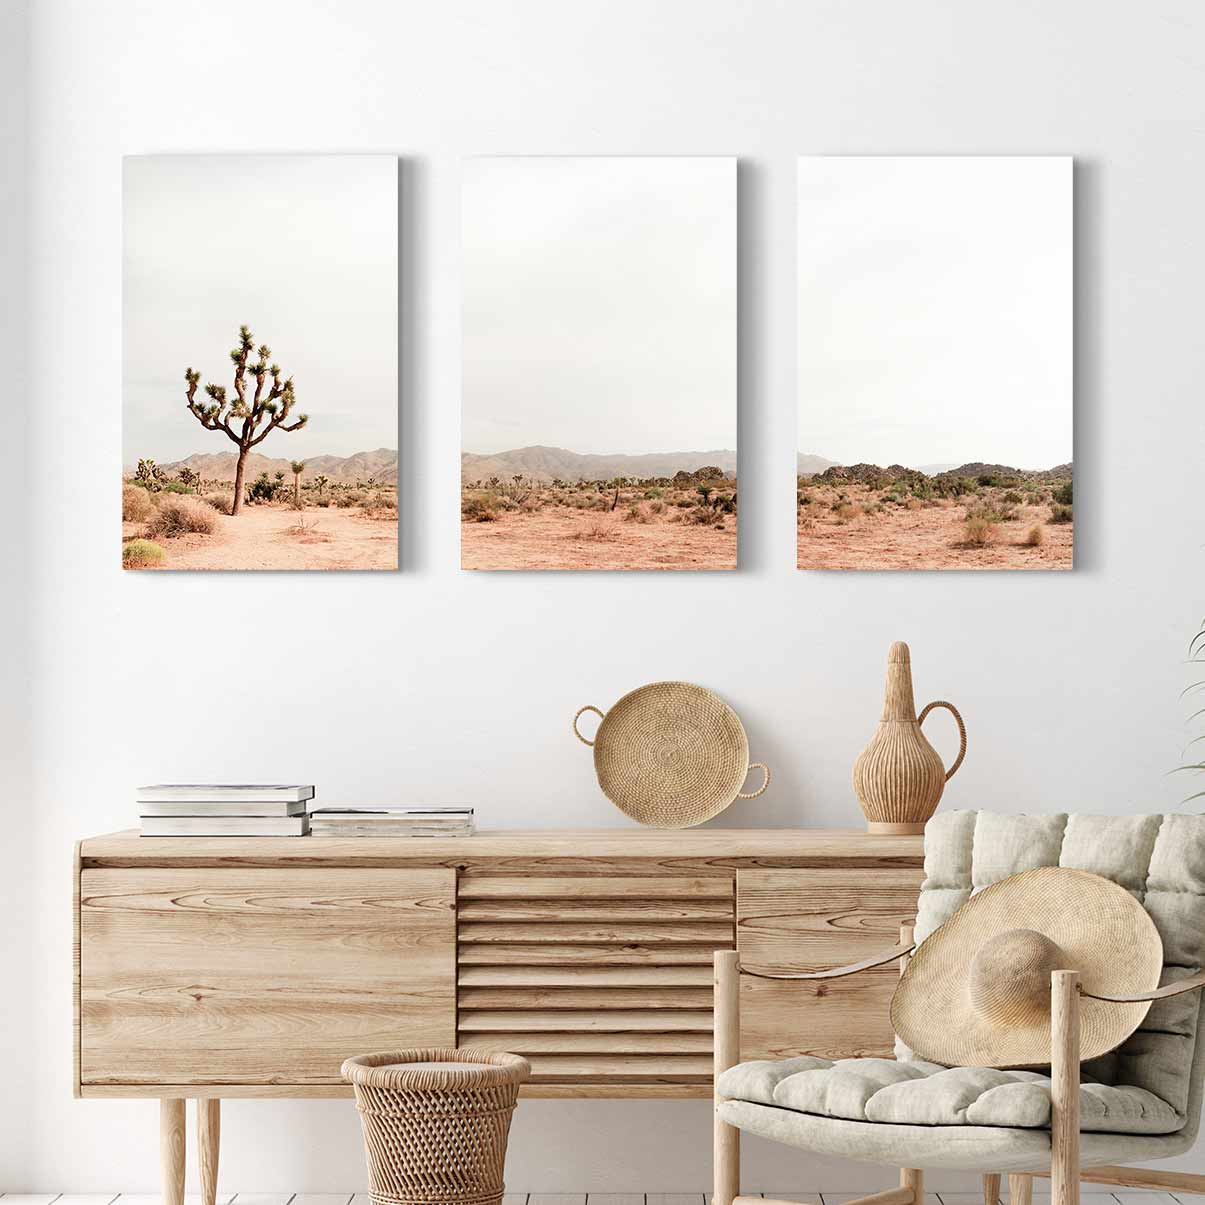 Joshua Tree - 3-Piece Canvas Print by Ysbrand Cosijn | Art Bloom Canvas Art